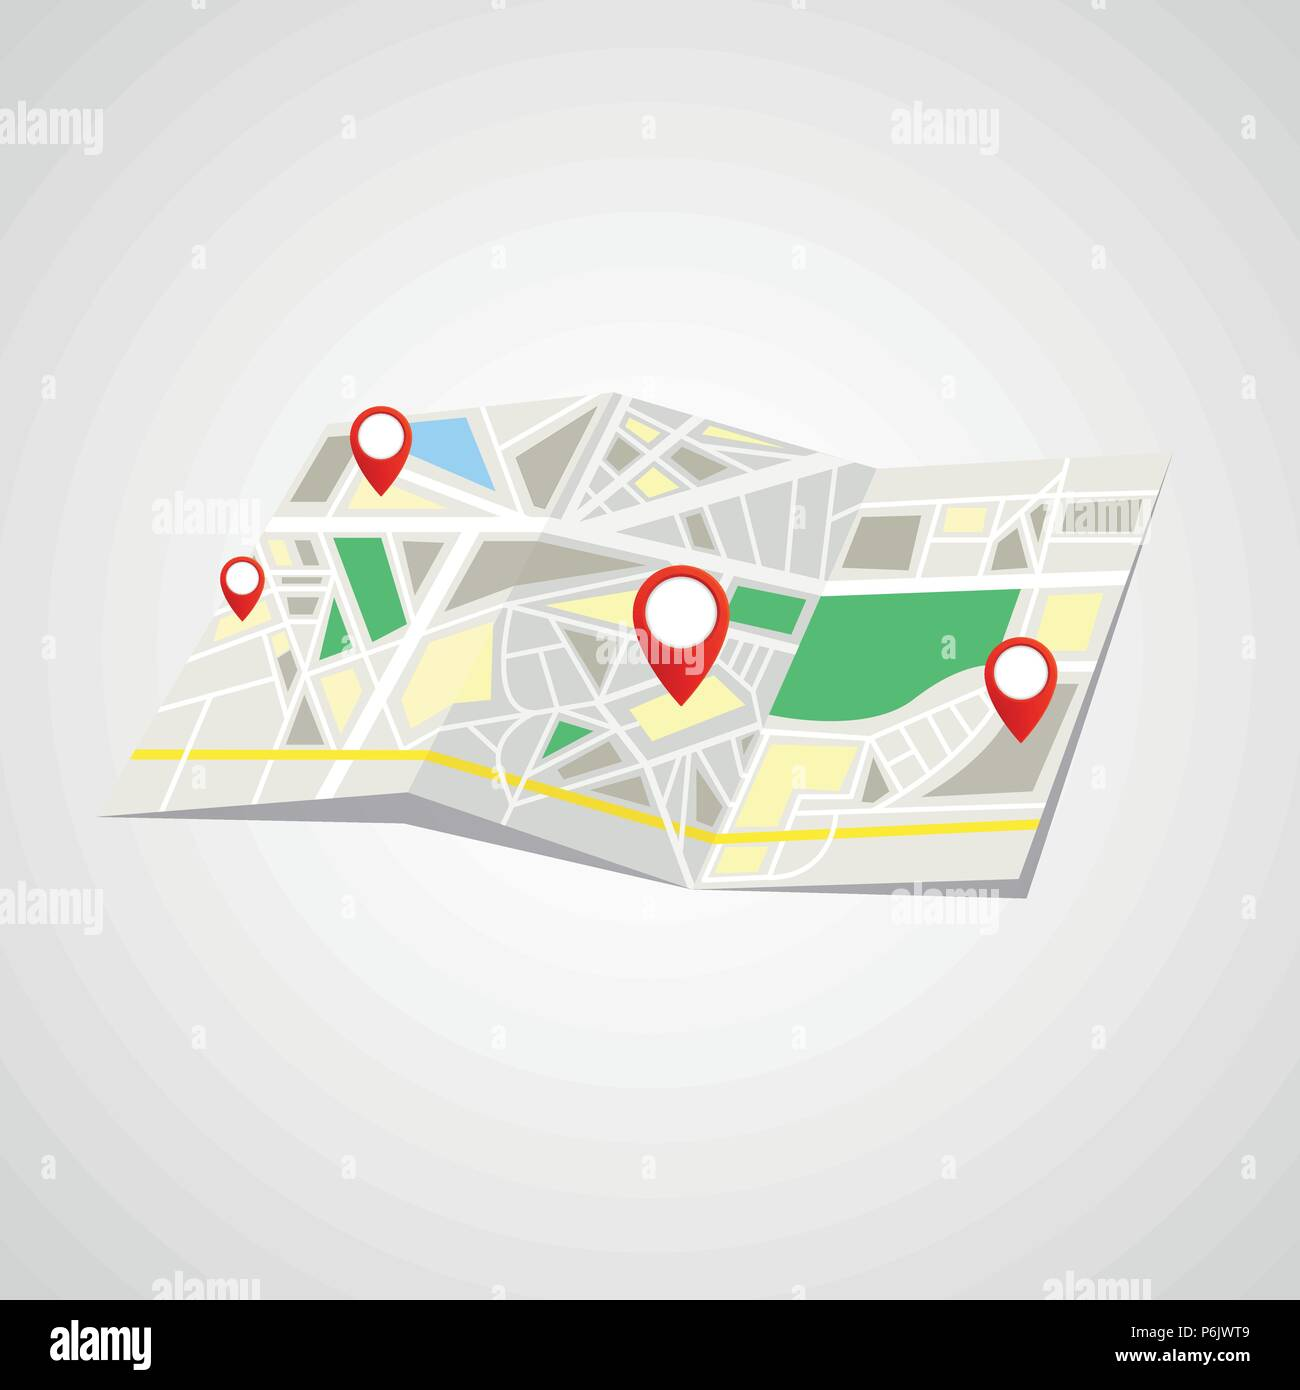 Folded Map with Point Markers - Stock Vector